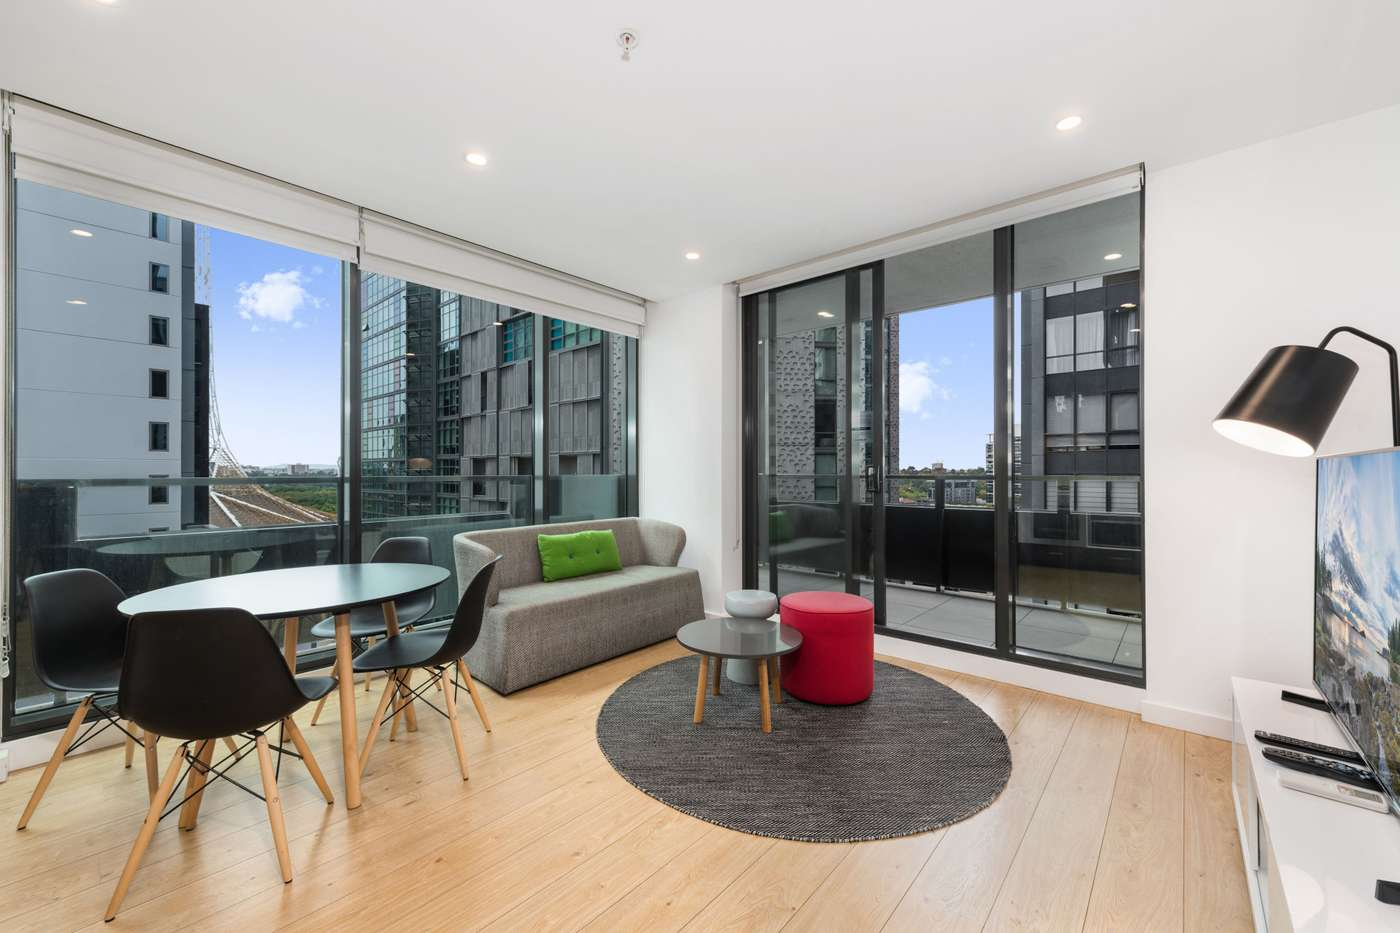 Main view of Homely apartment listing, 1507/57-61 City Road, Southbank, VIC 3006